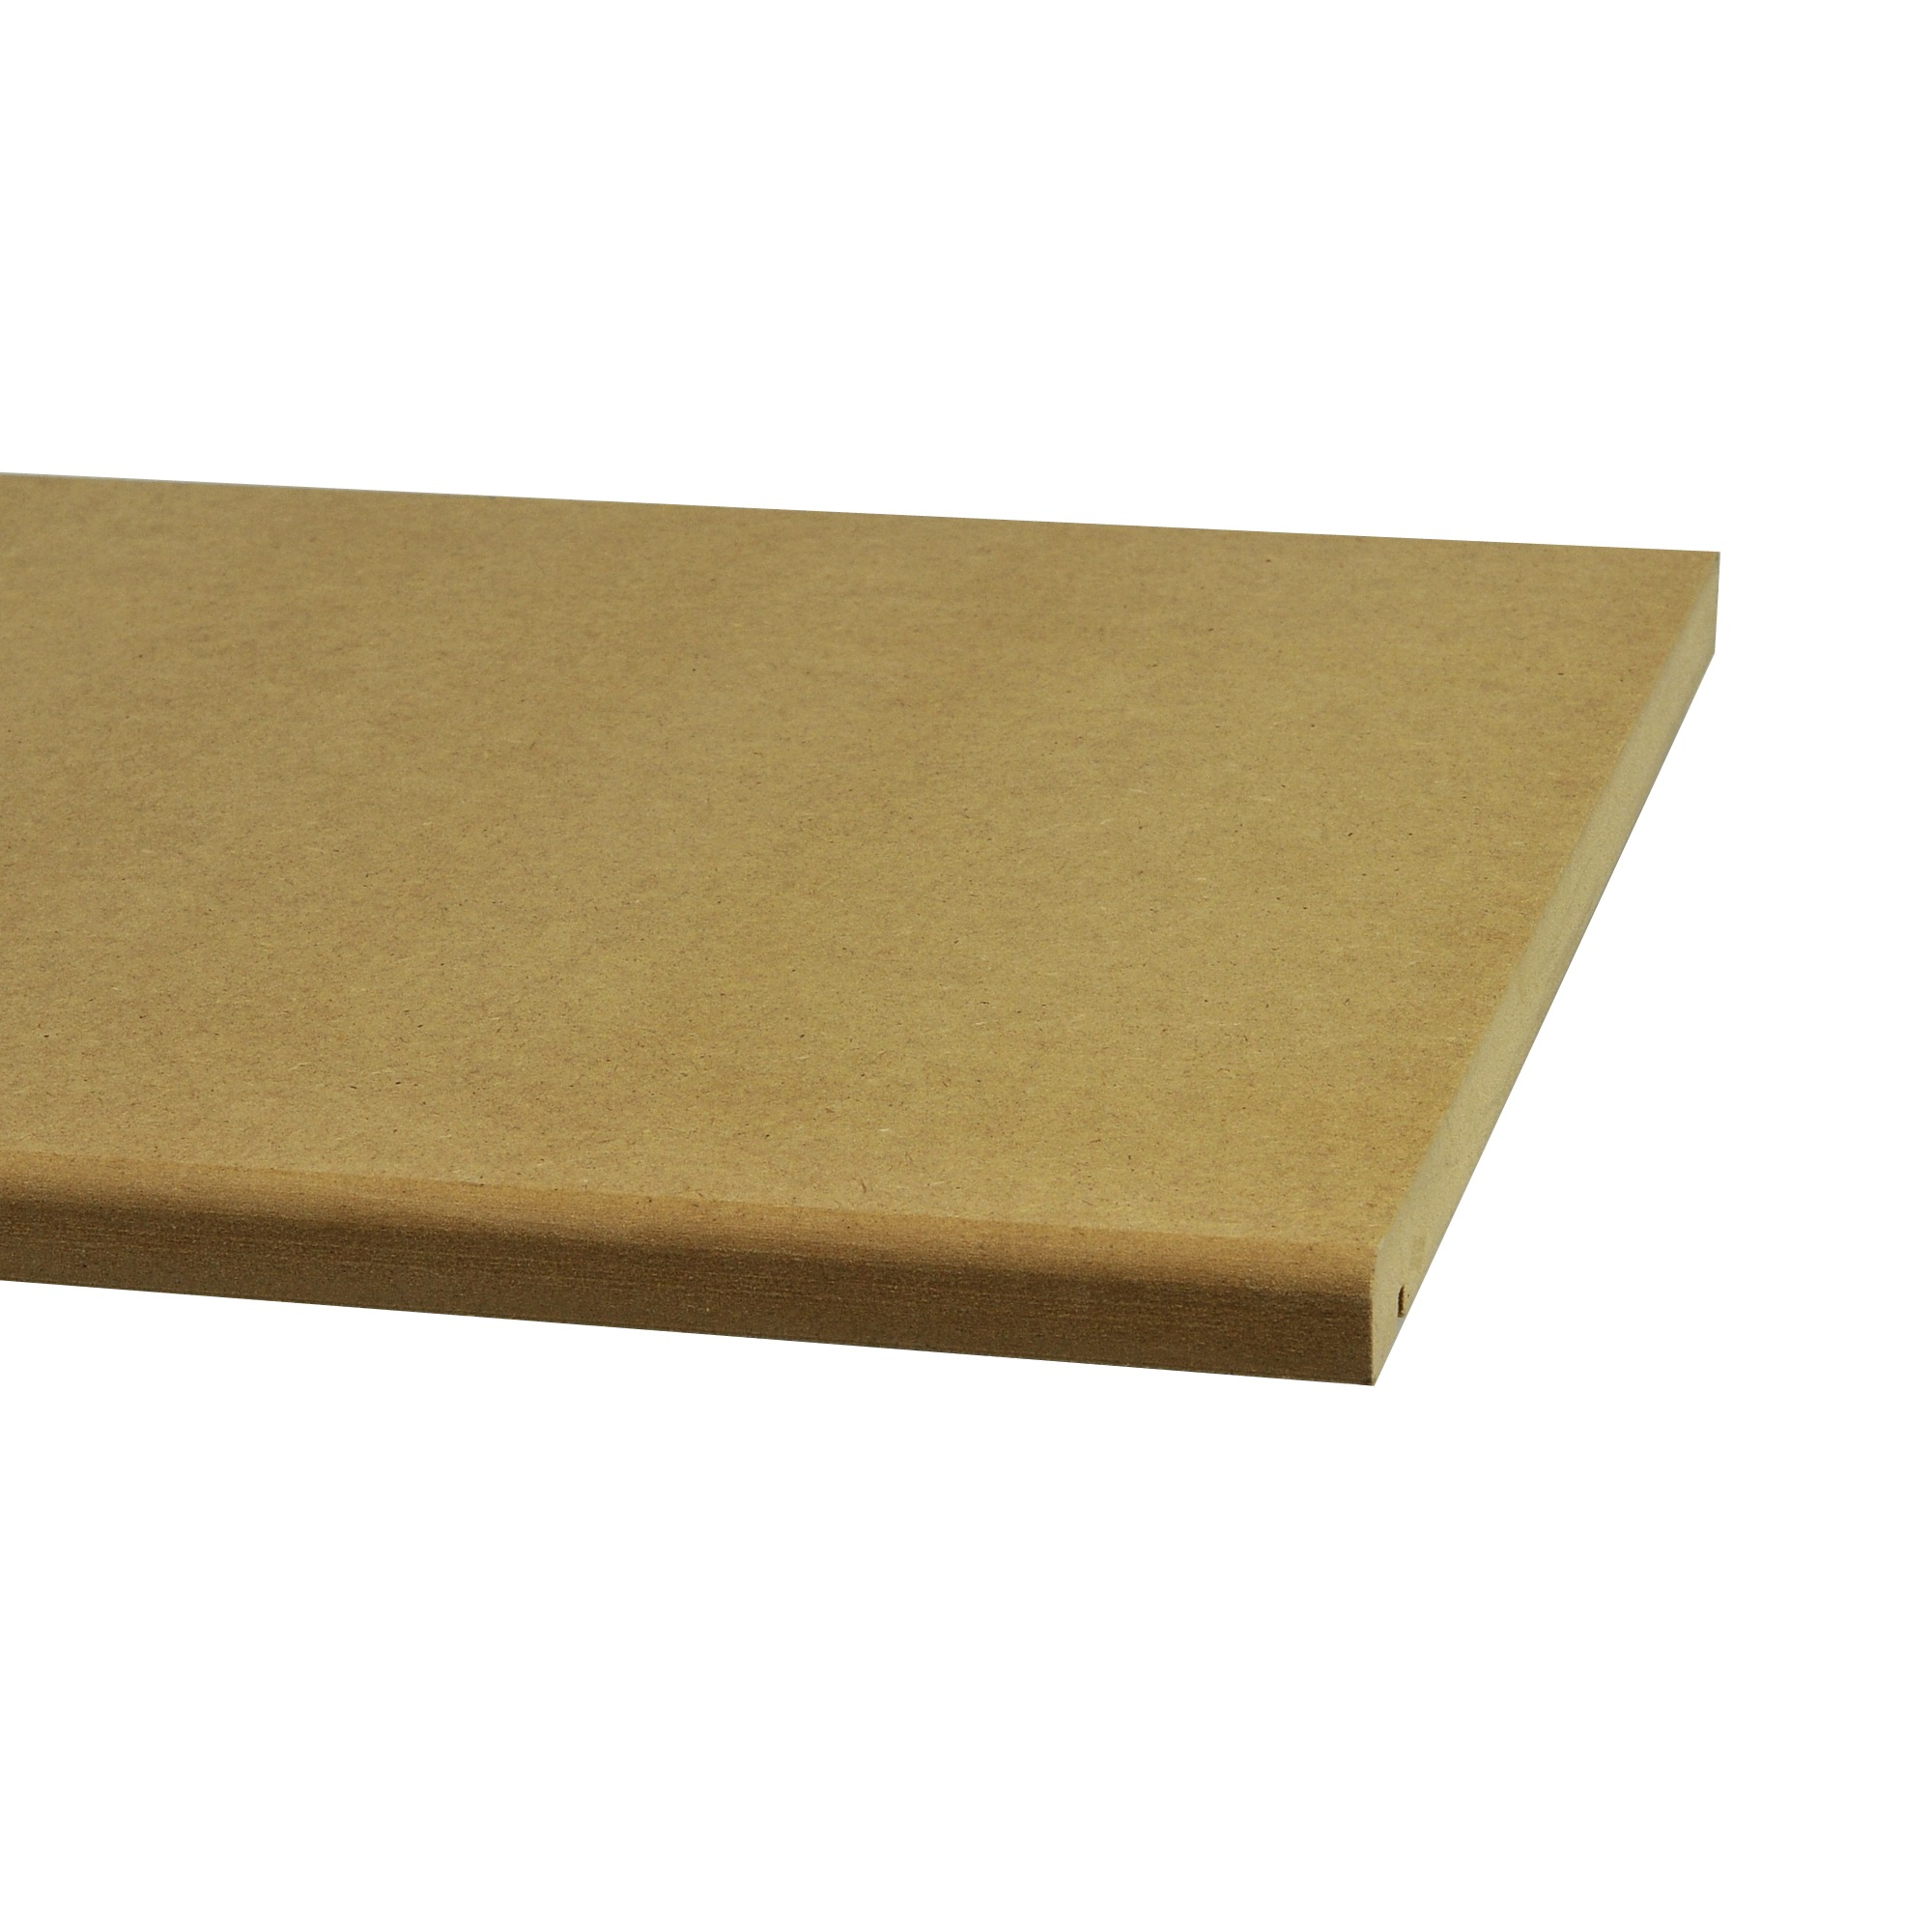 Vensterbank mdf 260x30 cm houten vensterbanken for Karwei mdf